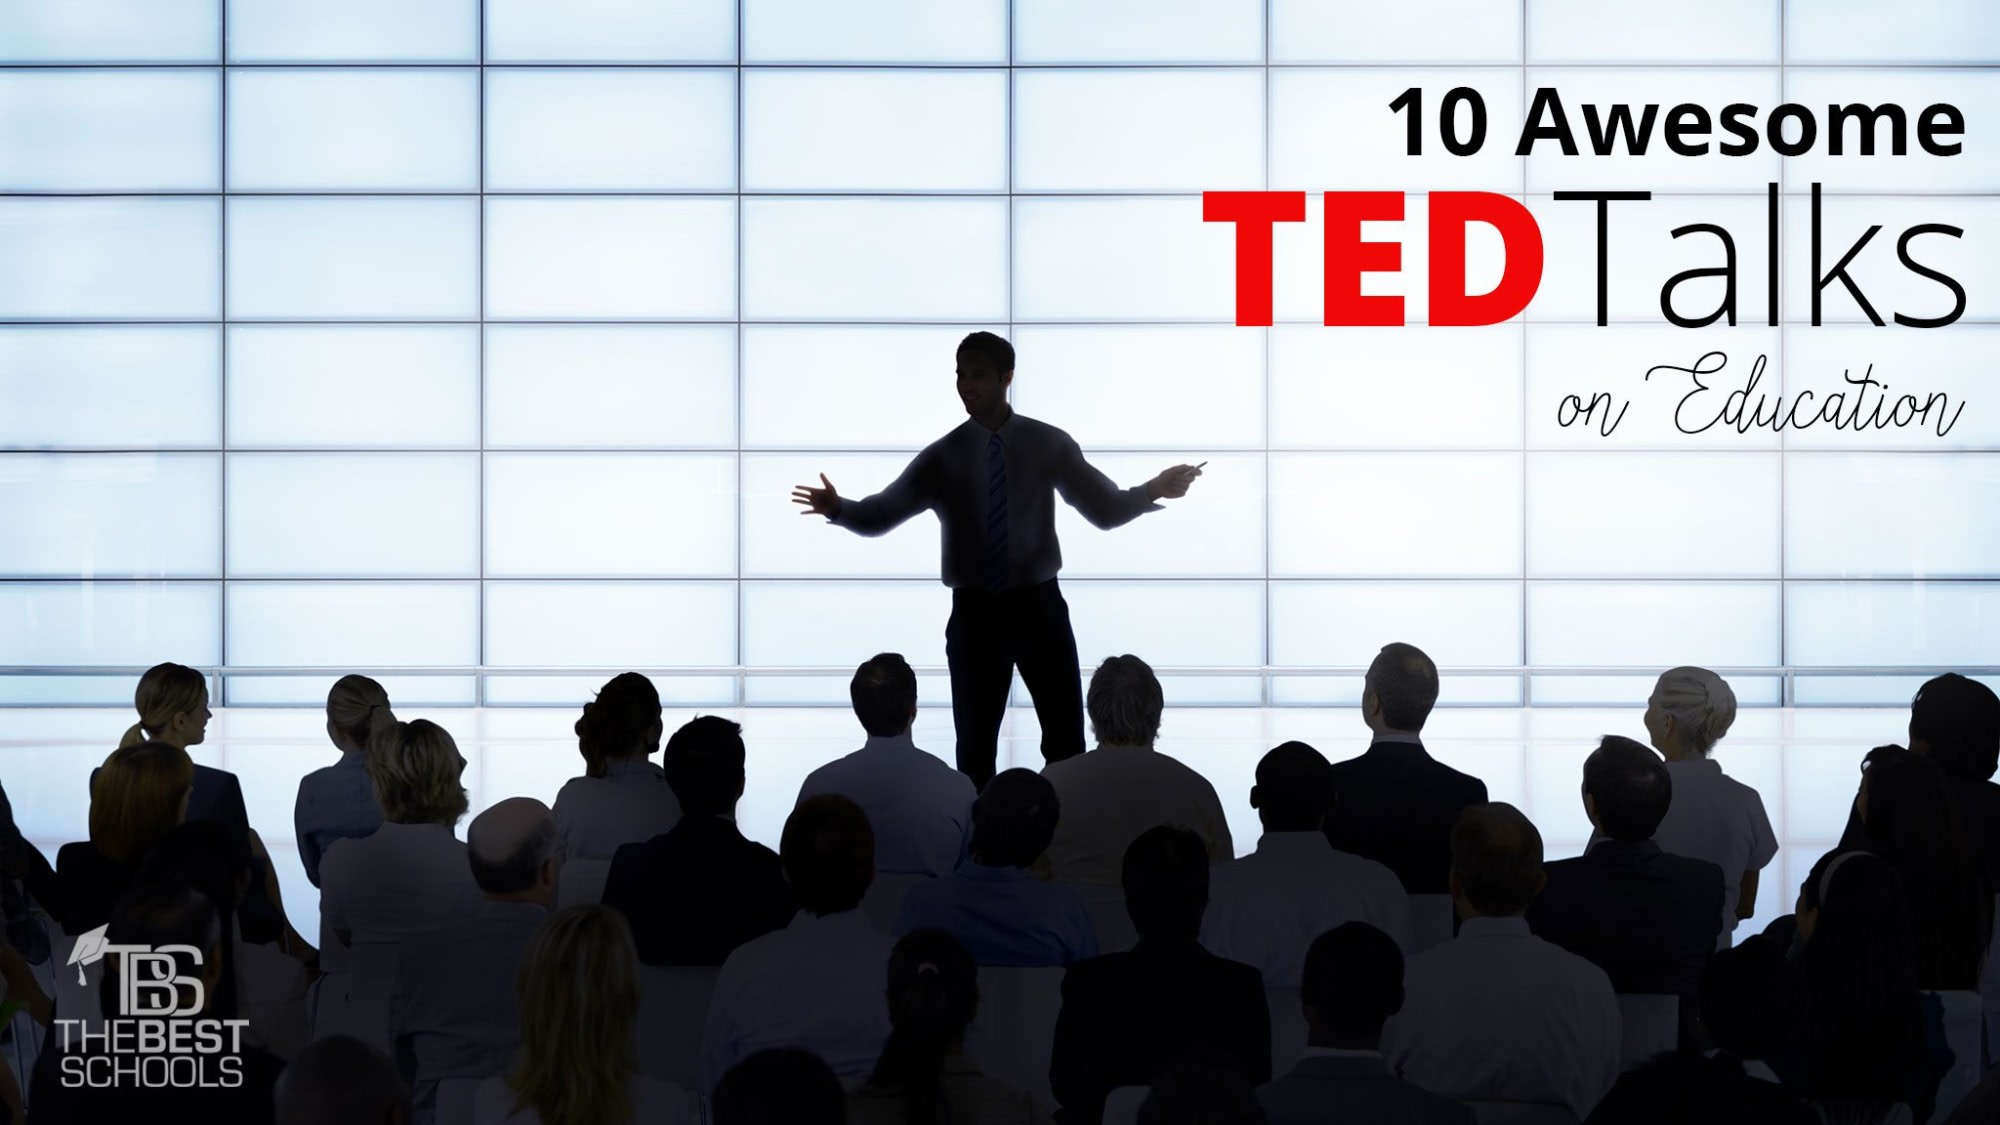 Awesome Ted Talks On Education